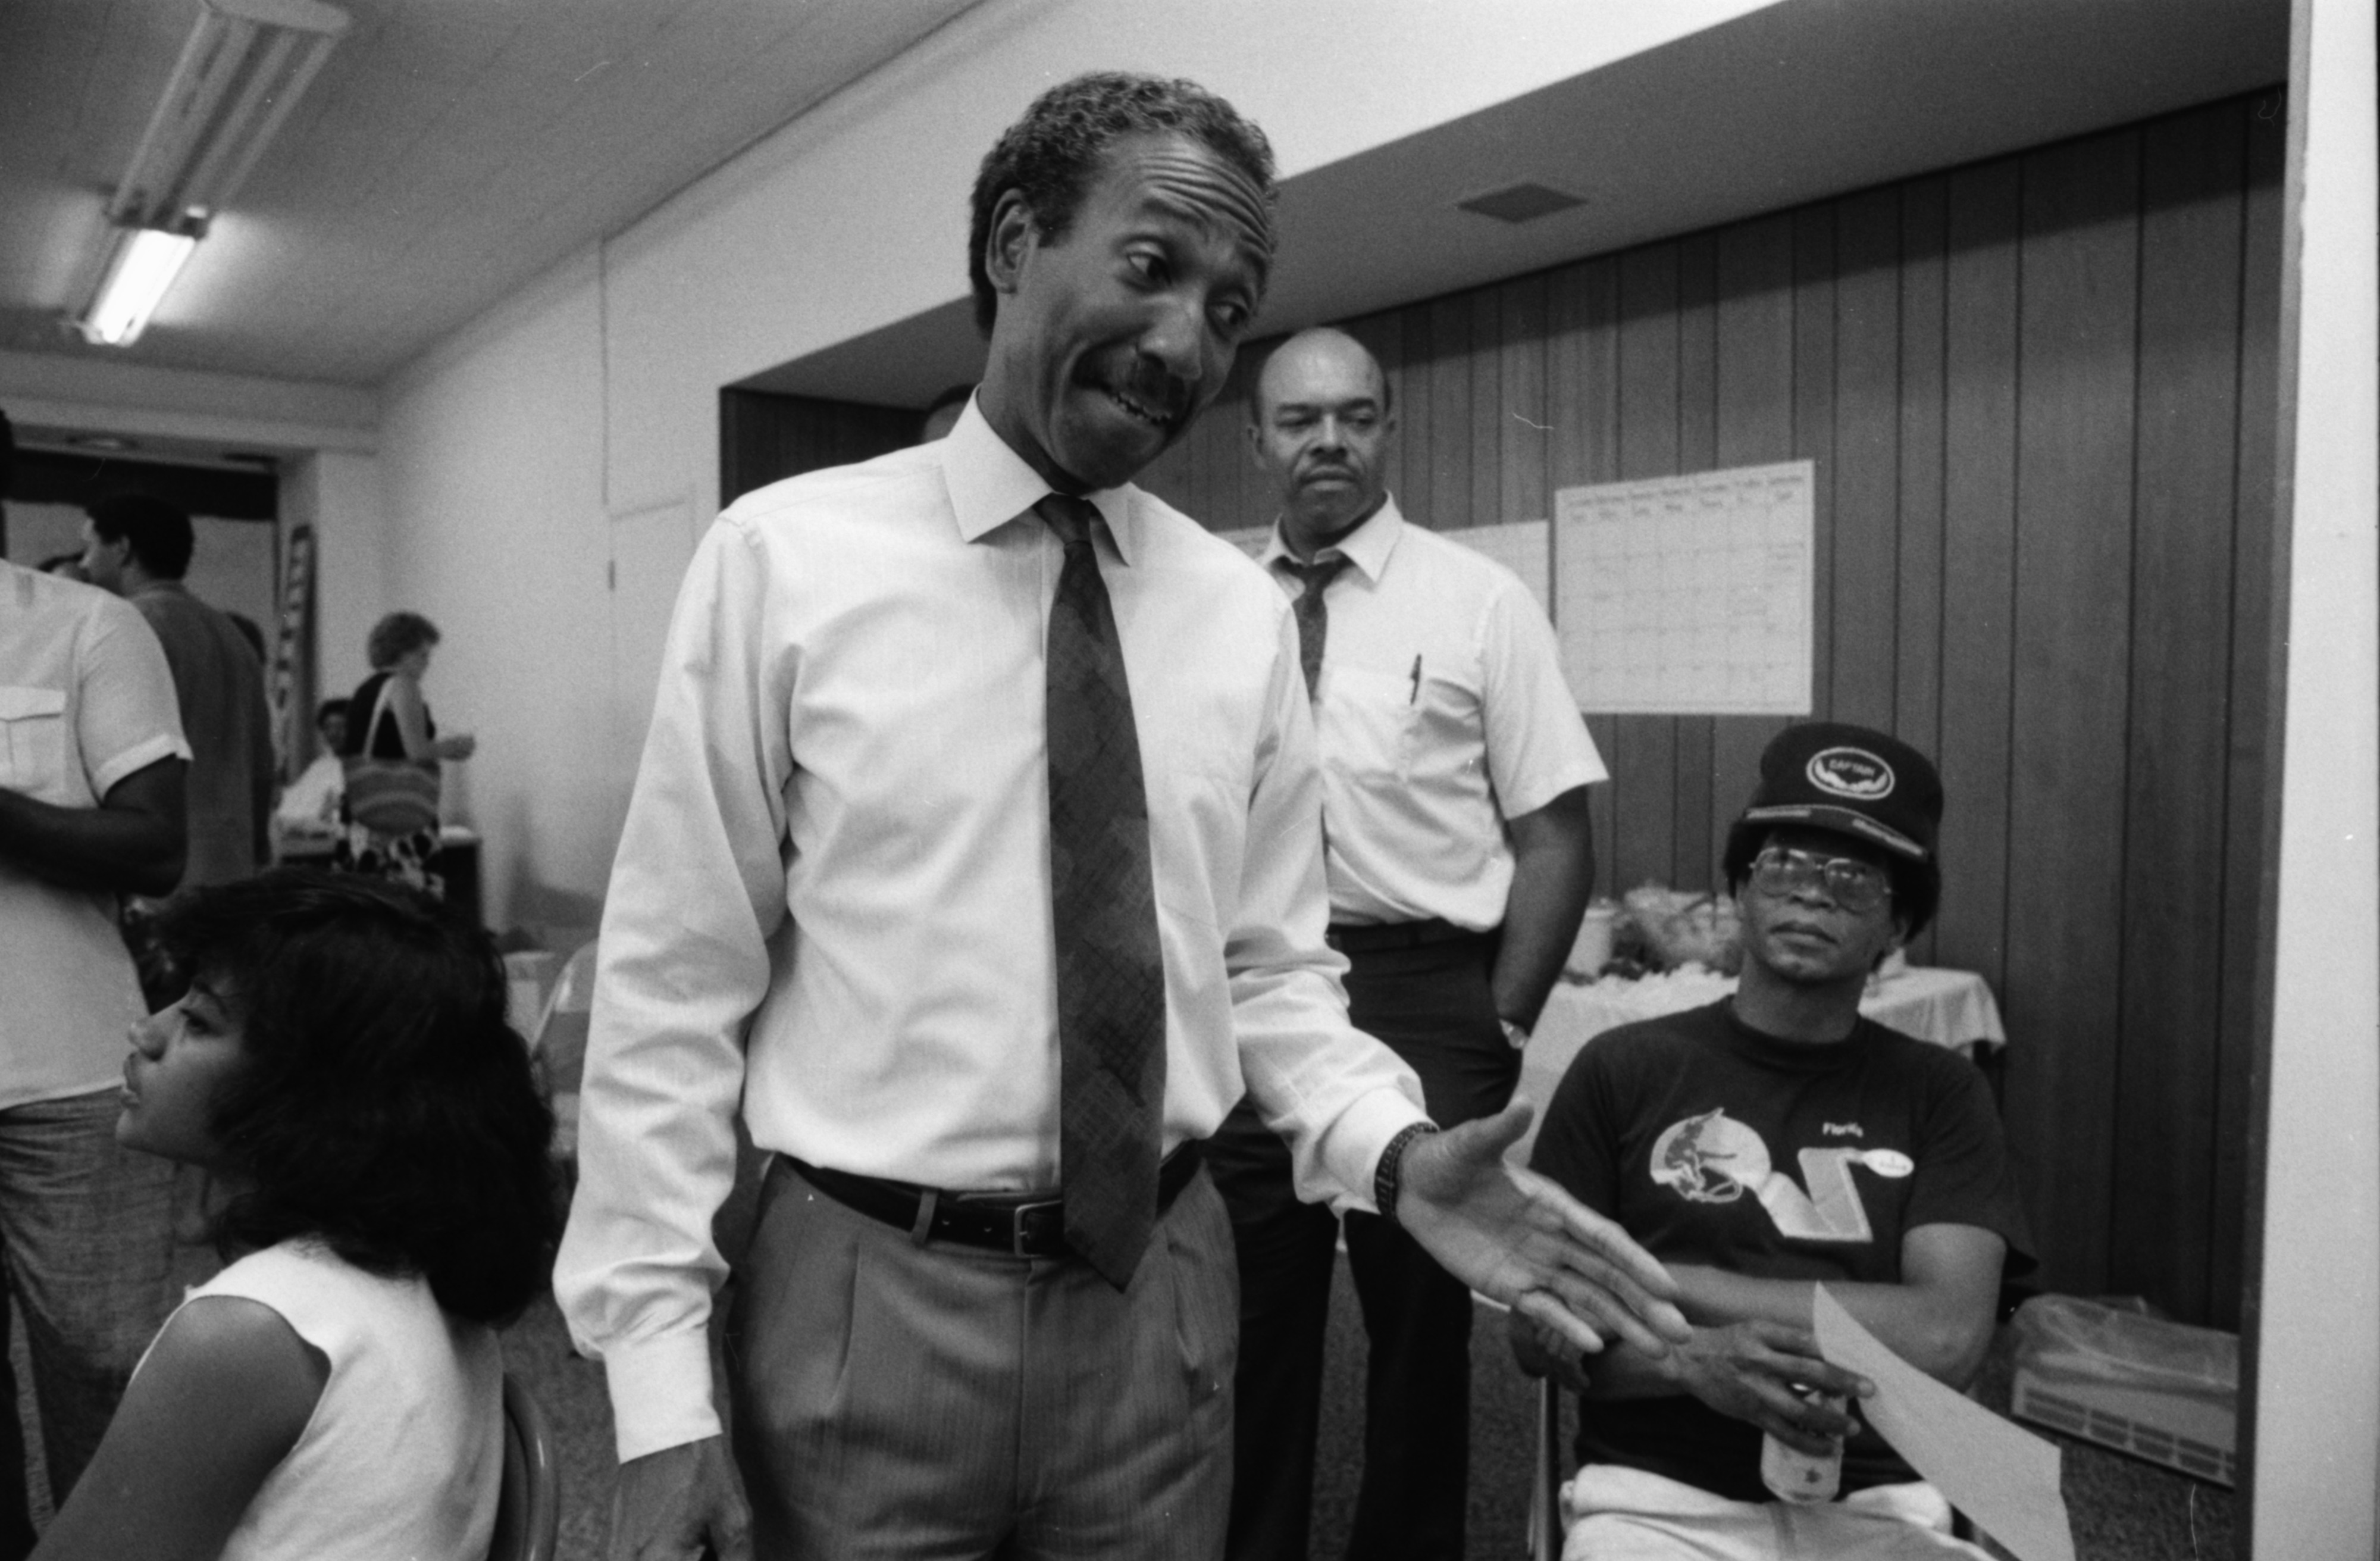 David Rutledge Concedes to Kirk Profit in Democratic Primary, August 1988 image